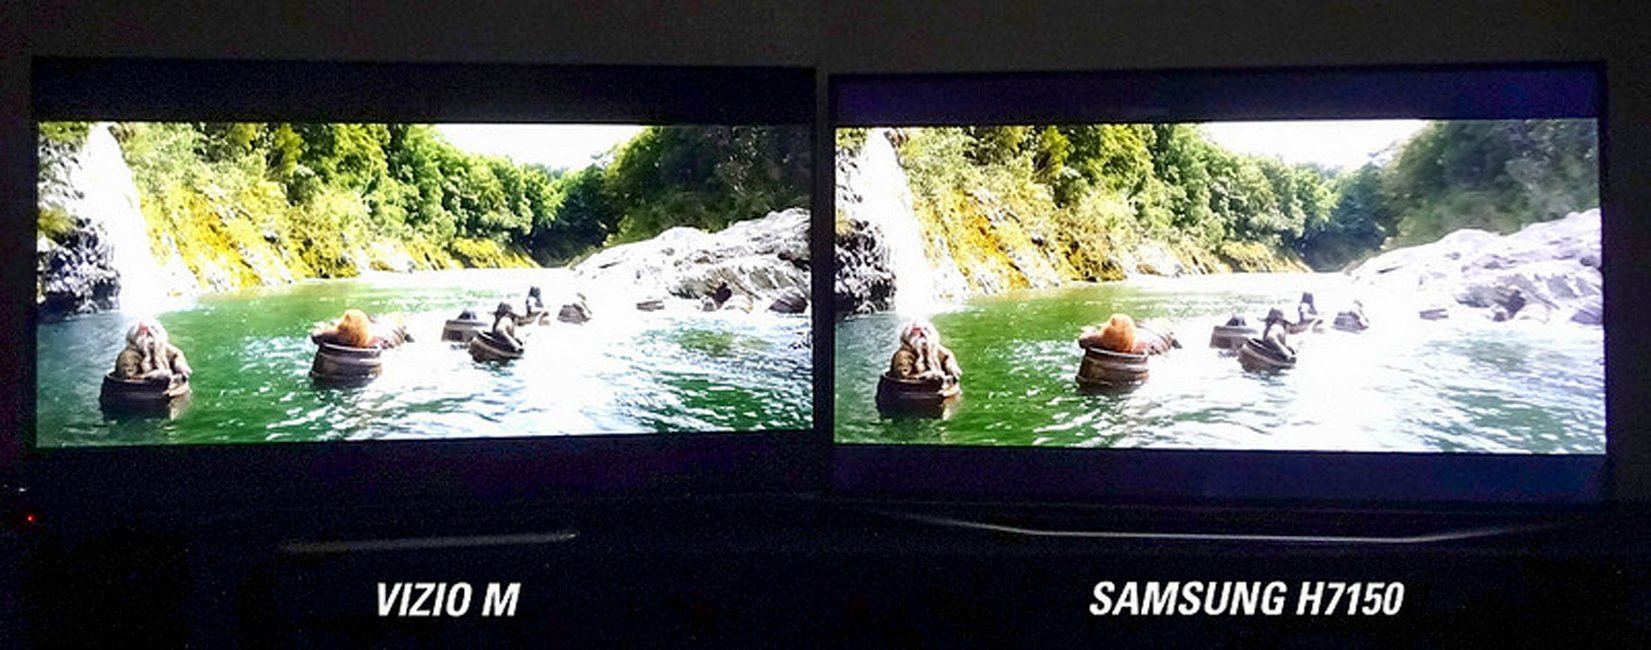 Vizio Demo: M Series vs. Samsung H7150